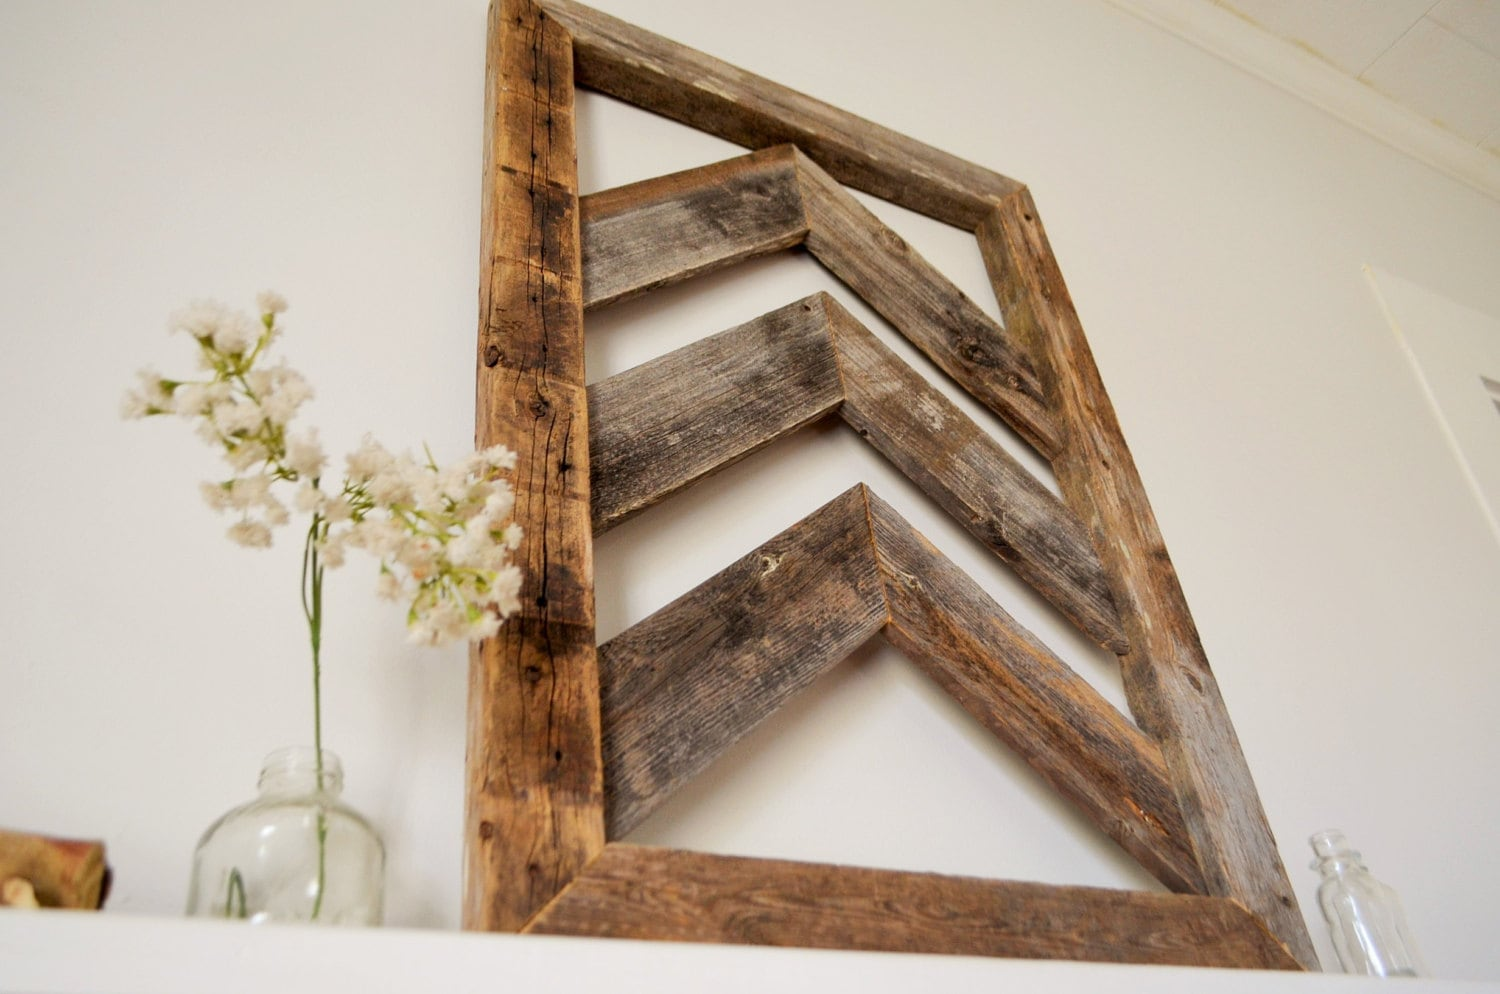 Sale reclaimed chevron wood wall art barn wood home decor Reclaimed wood wall art for sale